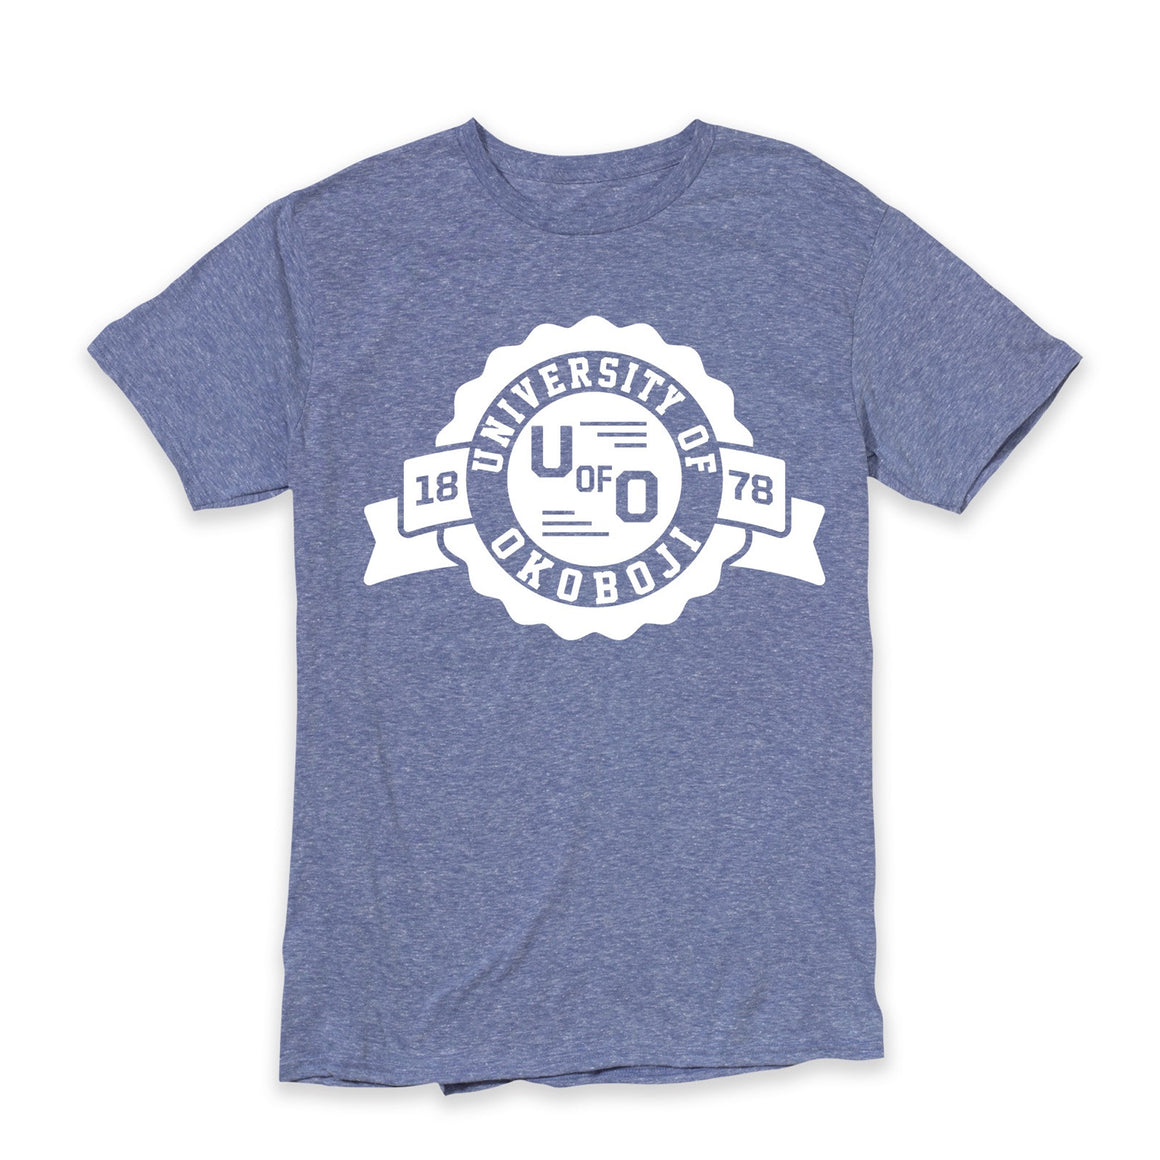 Old School U of O Blue Heather Tee